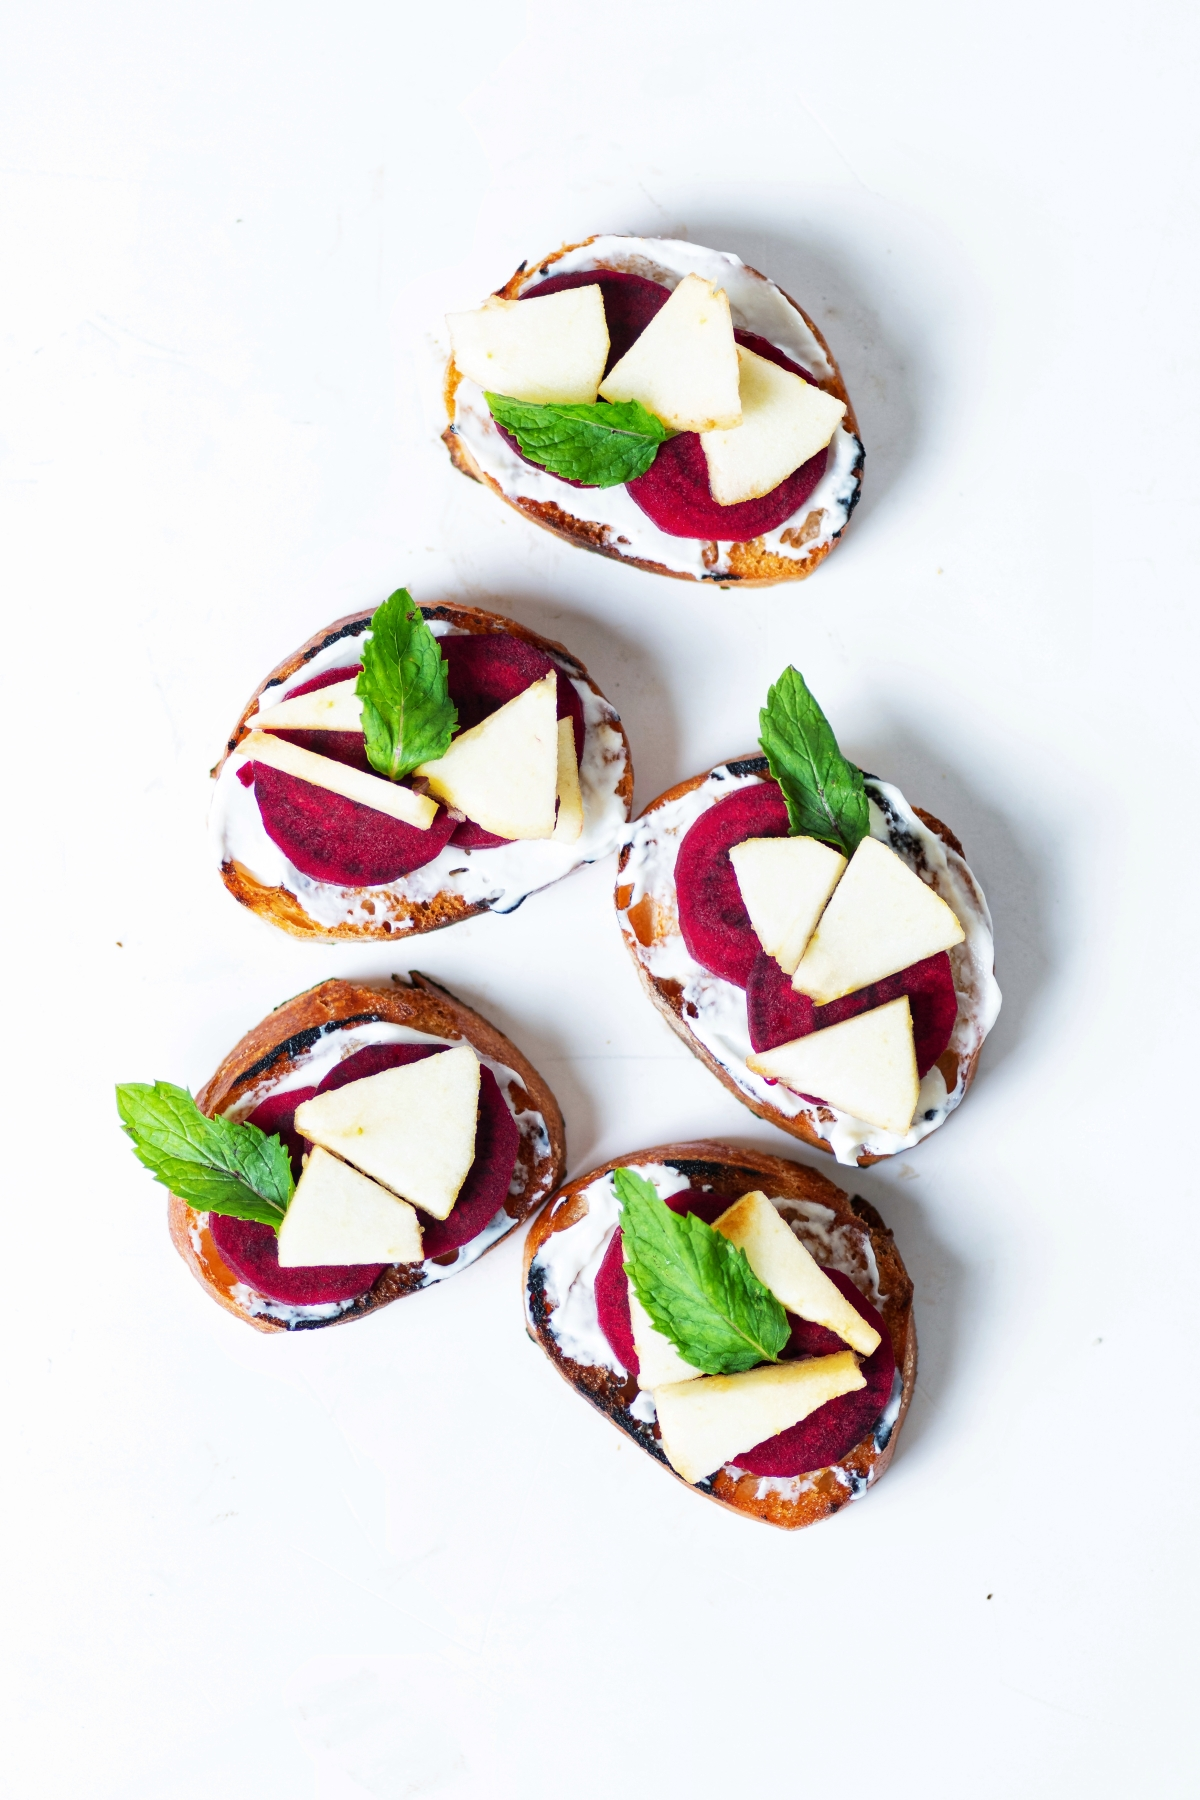 Sourdough Baguette with goats cheese, beetroot and apples by Aditi Handa